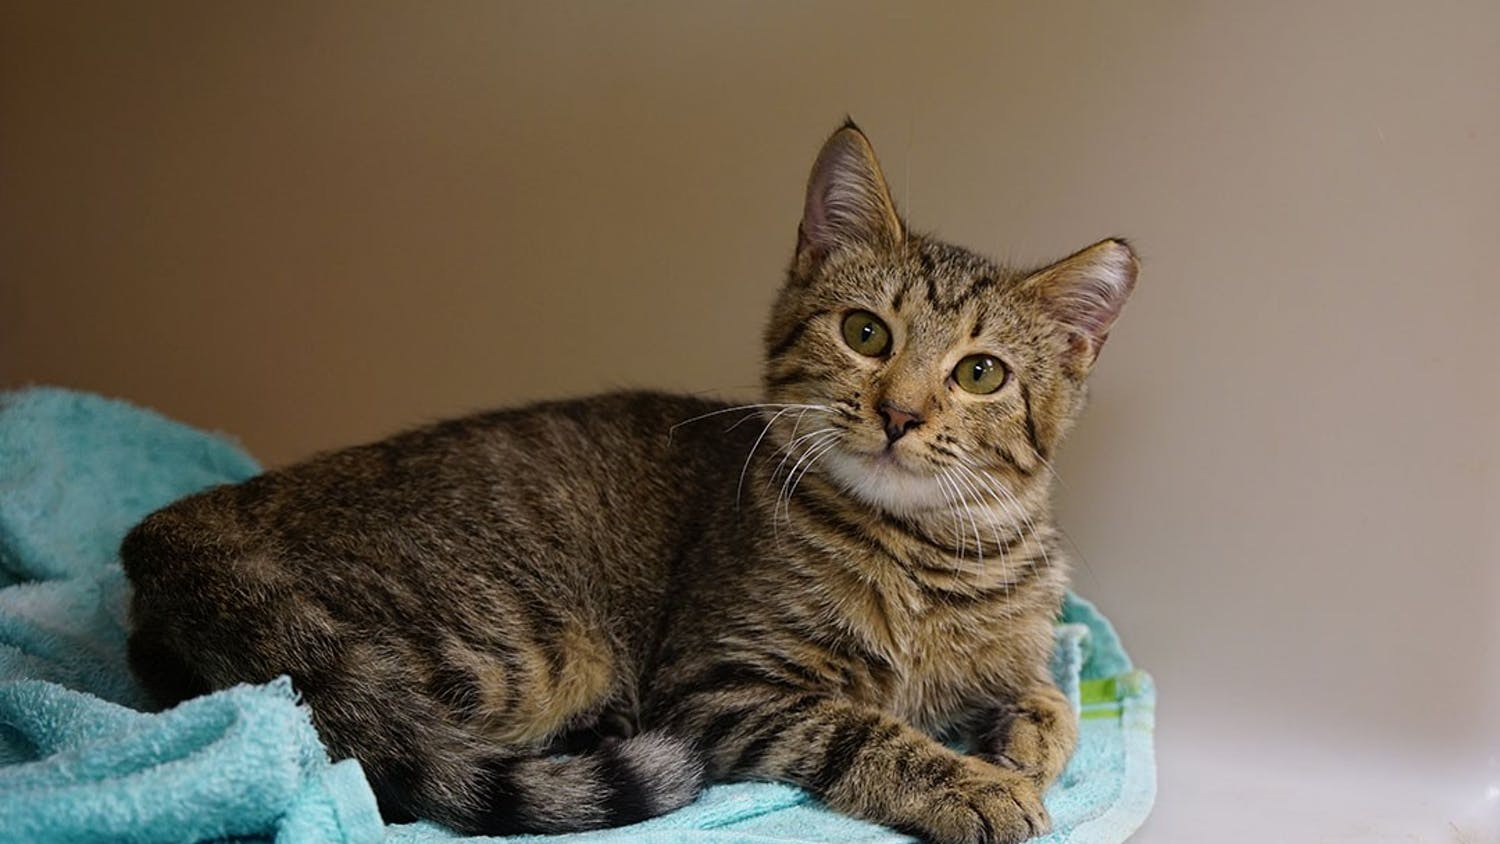 Edolie, a domestic shorthair kitten at City of Columbia Animal Services, looks out from his kennel on Sept. 24, 2020.